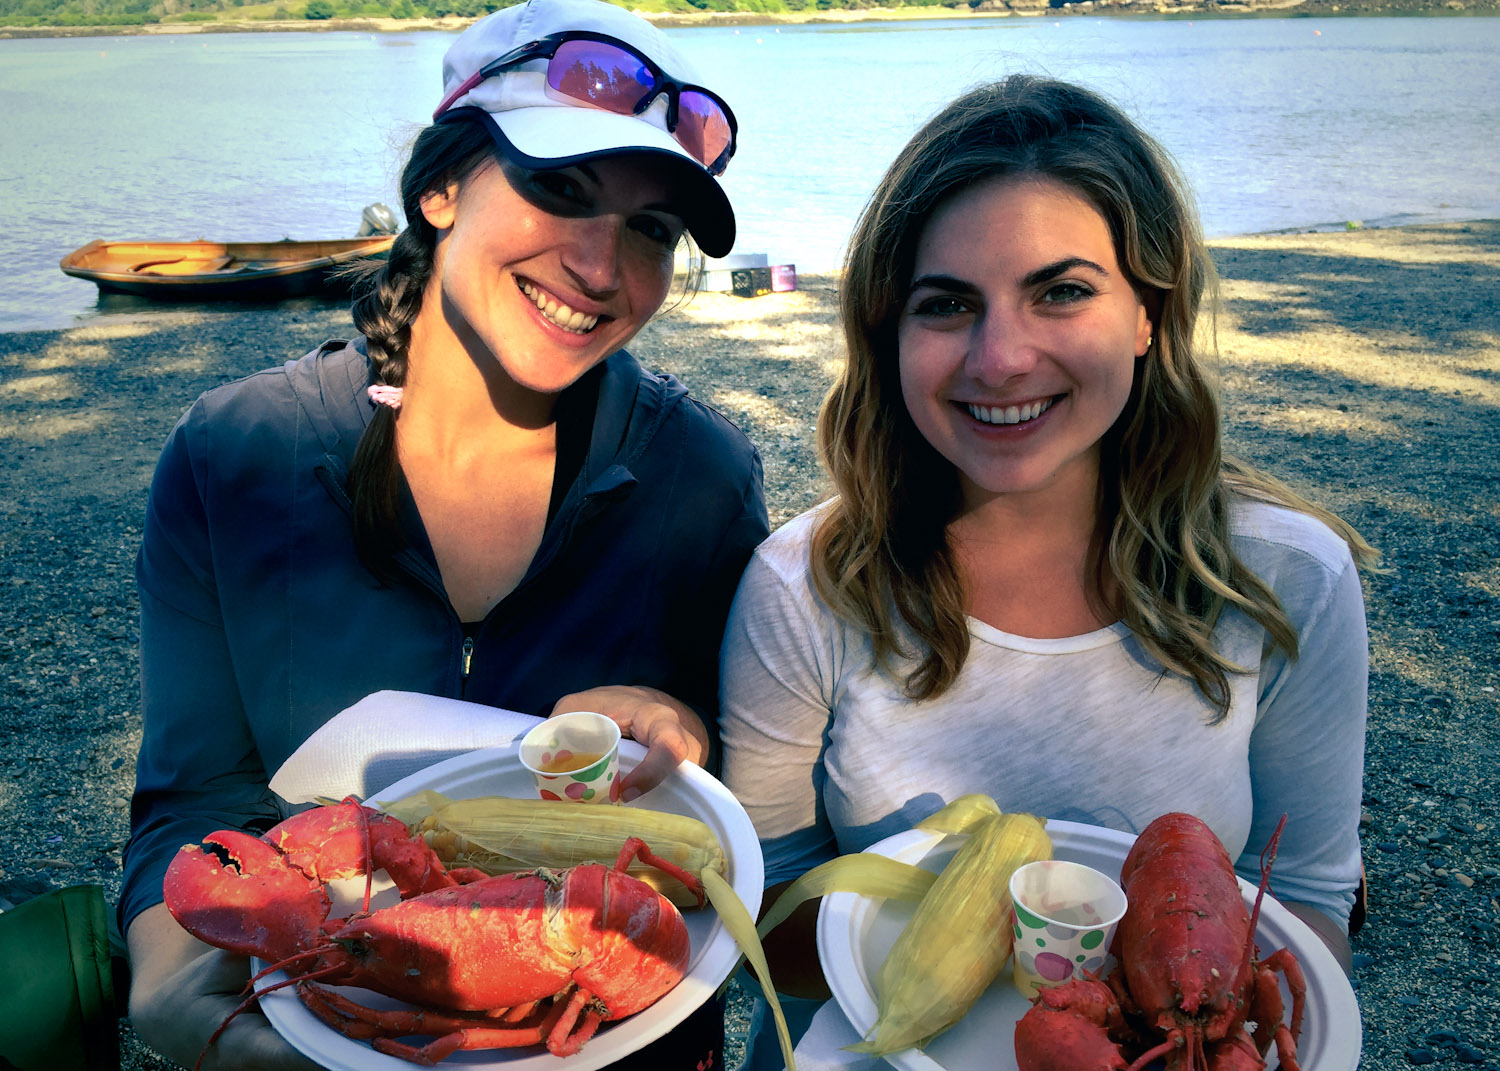 It's an all-you-can-eat lobster feast, so don't be shy!